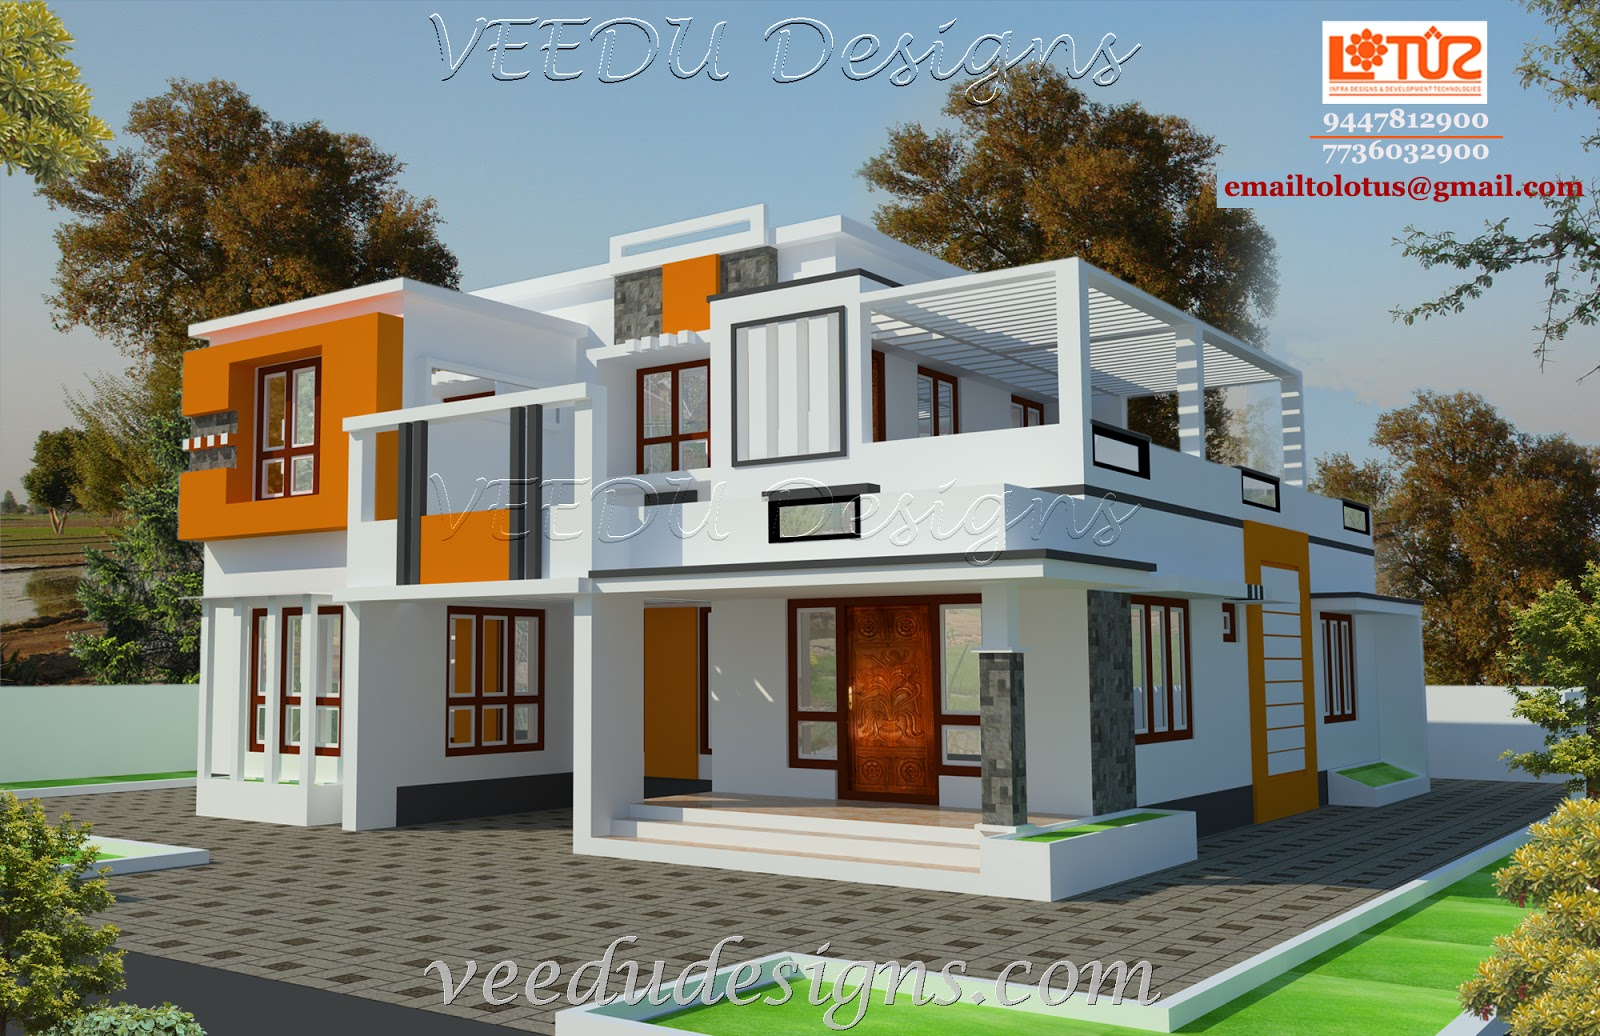 veedu designs kerala home designs ForFor Home Design